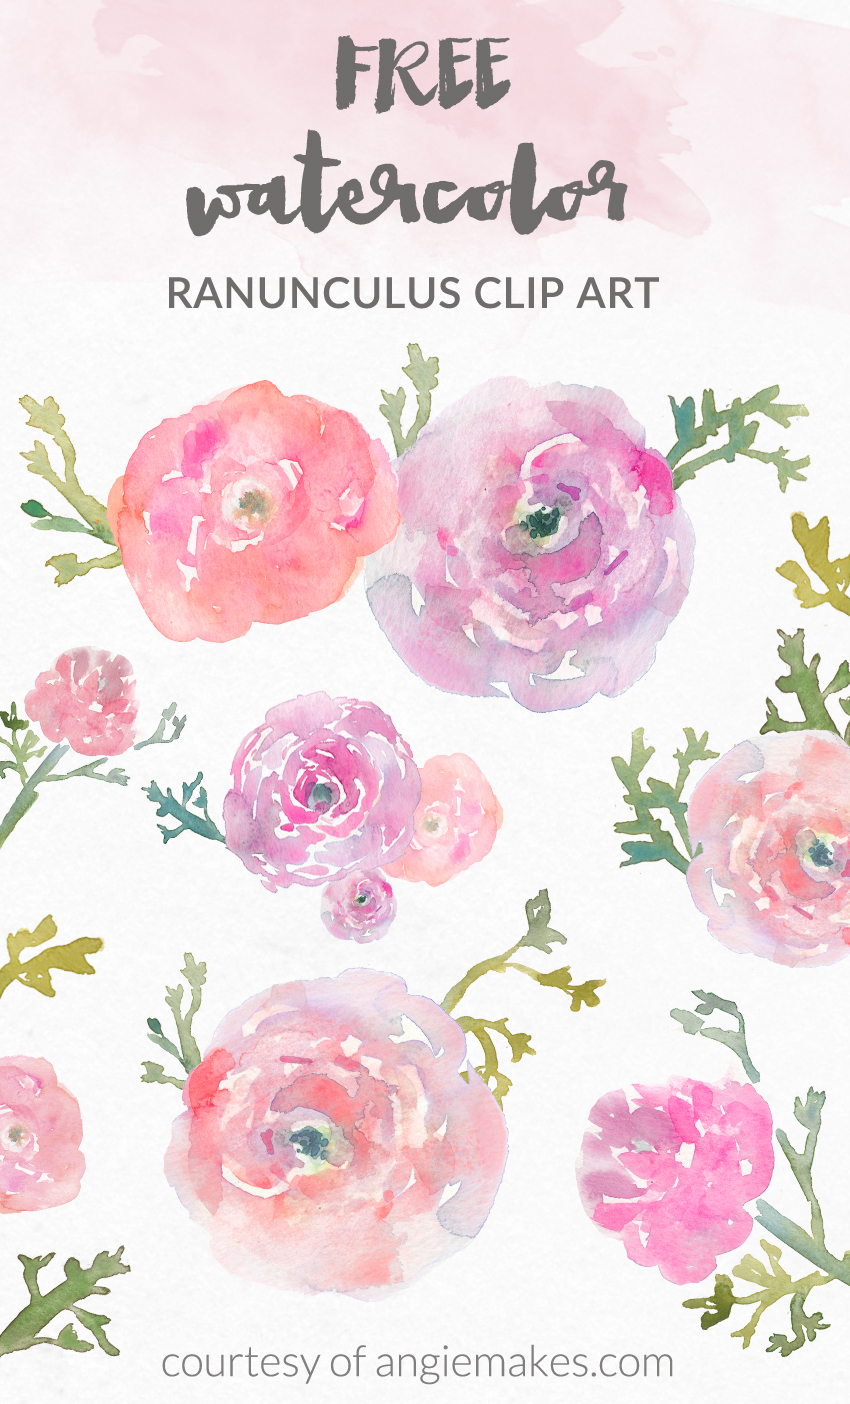 Free Watercolor Flower Clip Art - Waterc-Free Watercolor Flower Clip Art - Watercolor Ranunculus by Angie Makes | angiemakes clipartall.com-10